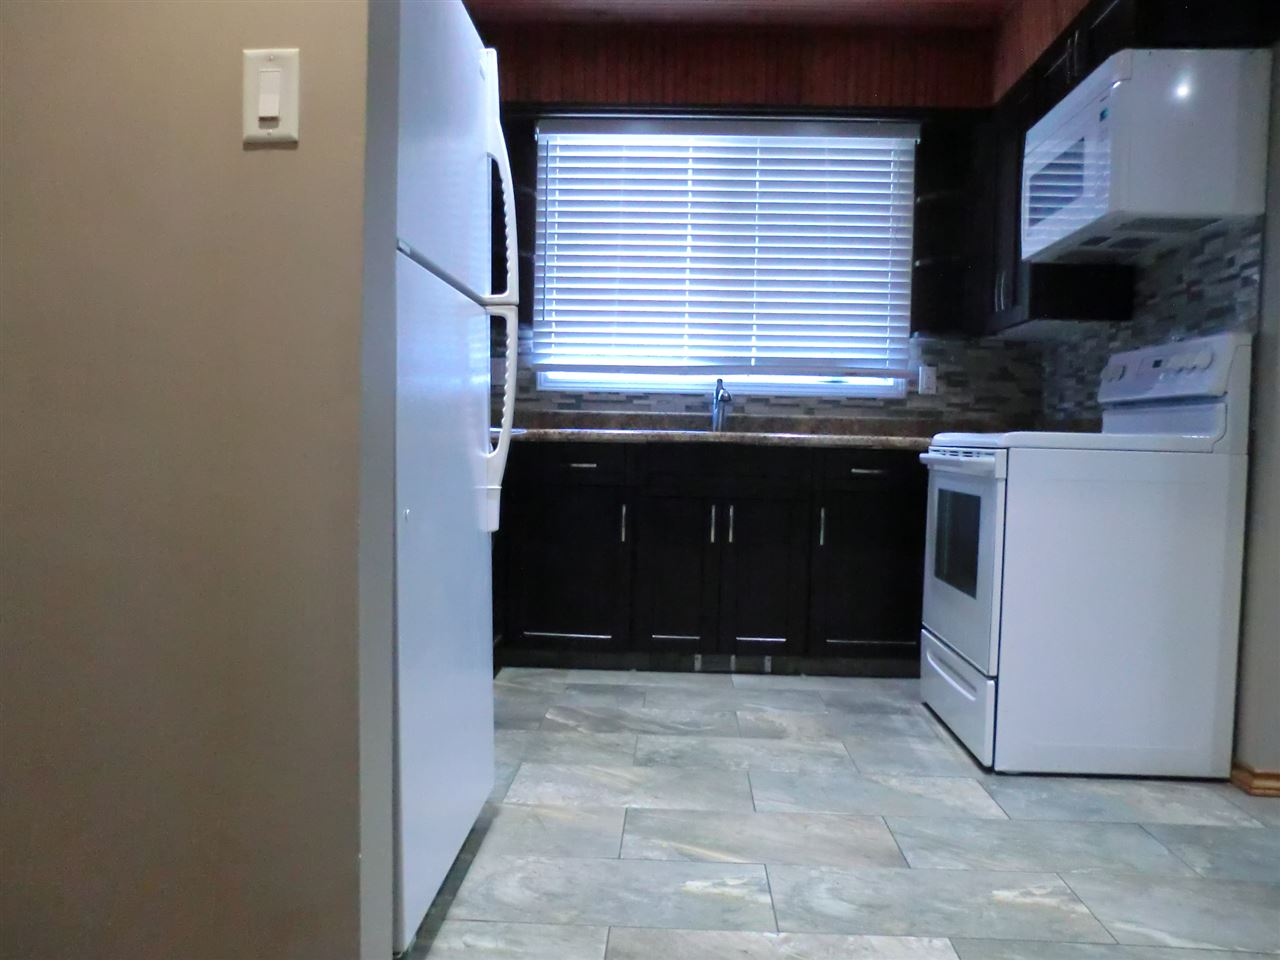 Kitchen upgraded and entire main floor remodelled in 2013.